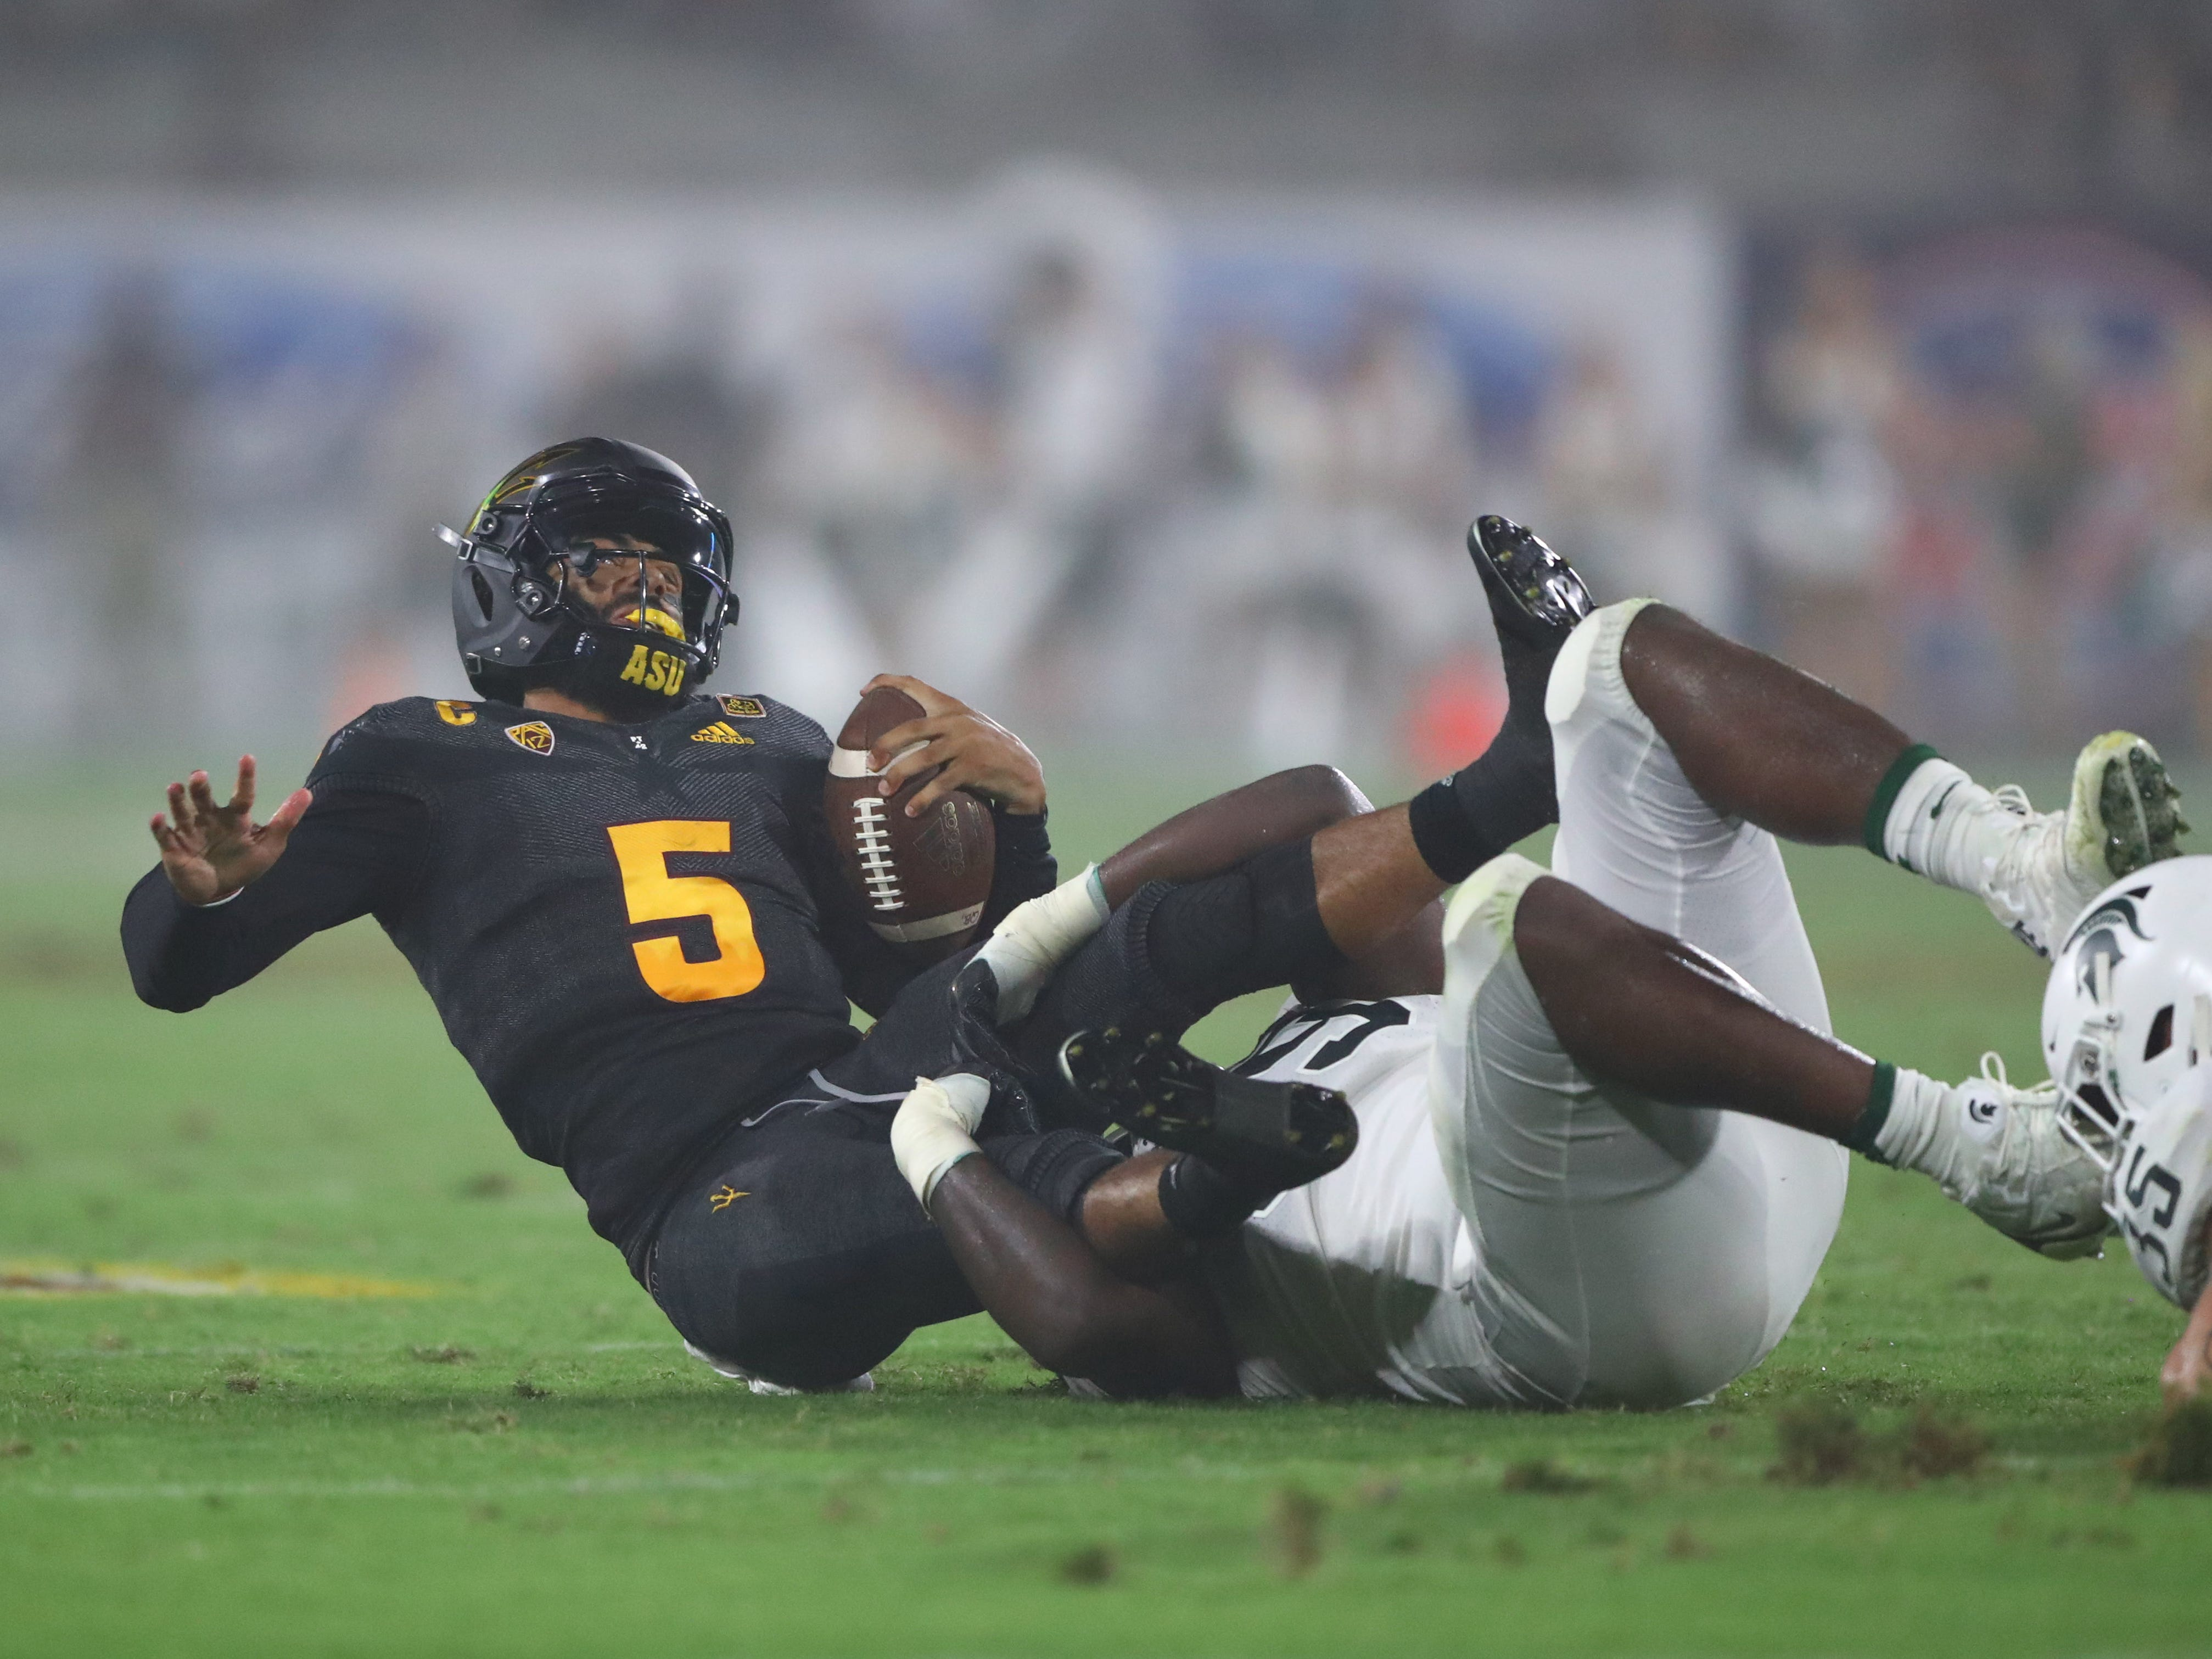 Arizona State Sun Devils quarterback Manny Wilkins (5) is tackled by the Michigan State Spartans in the first half at Sun Devil Stadium.